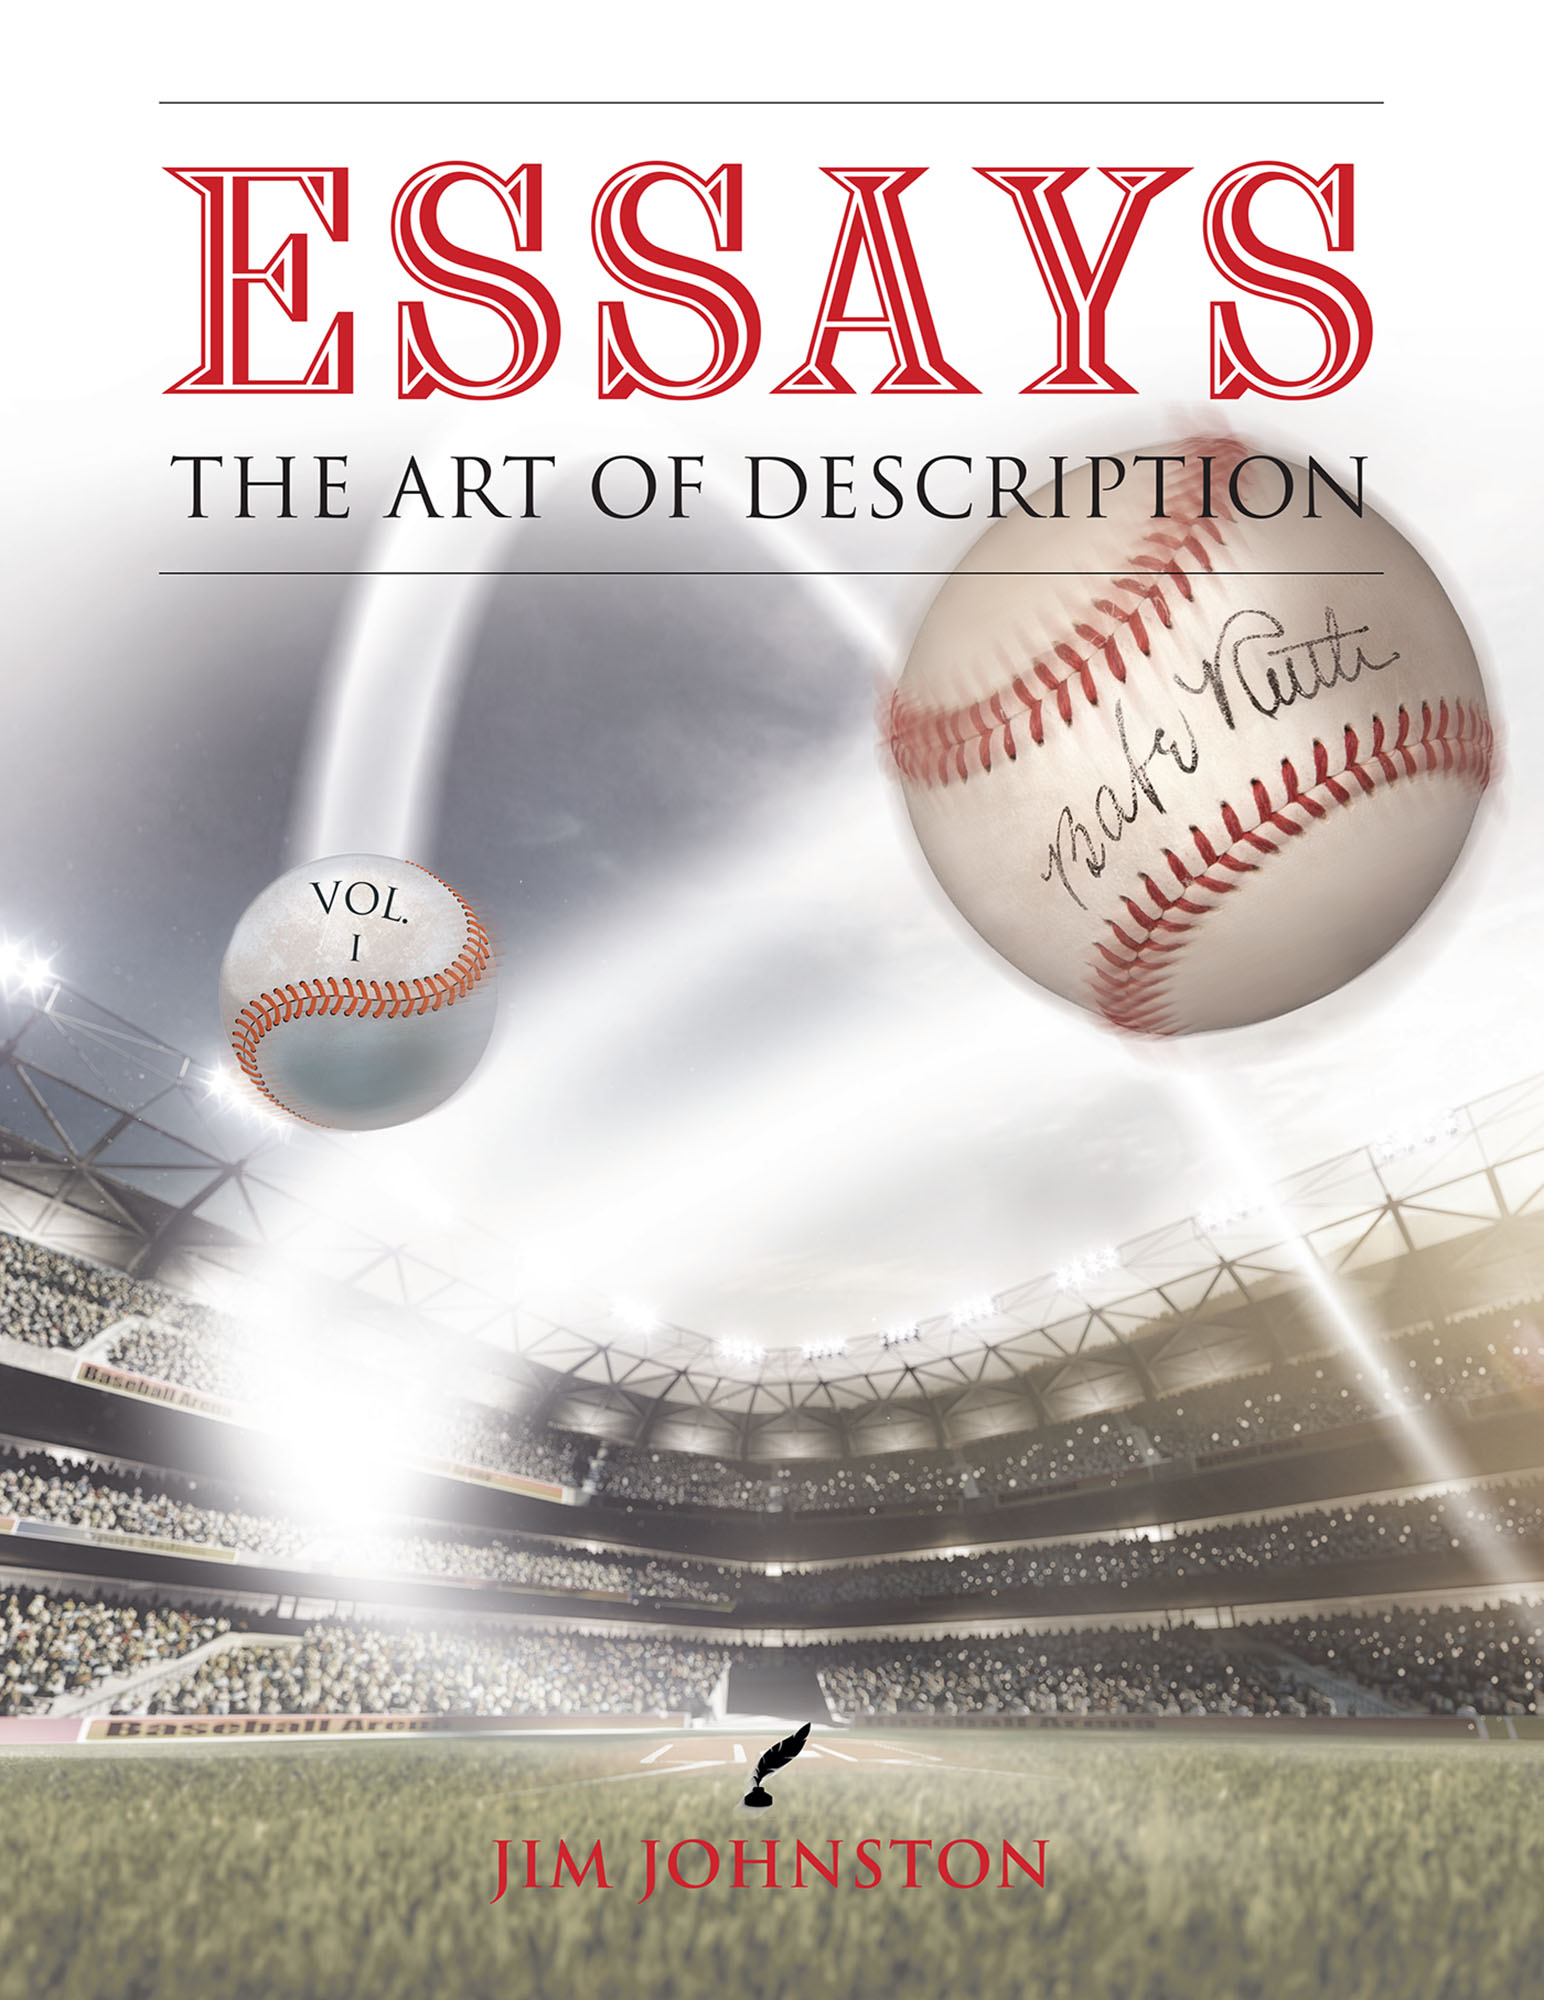 Research Proposal Essay Topics Youngstown Oh August   Newswirecom  Johnston Industrial  Manager Collector Emeritus And Now Author Has Completed His First  Volume Essays  Topics For Argumentative Essays For High School also Health Issues Essay Jim Johnstons New Book Essays The Art Of Description Is A  Science Development Essay